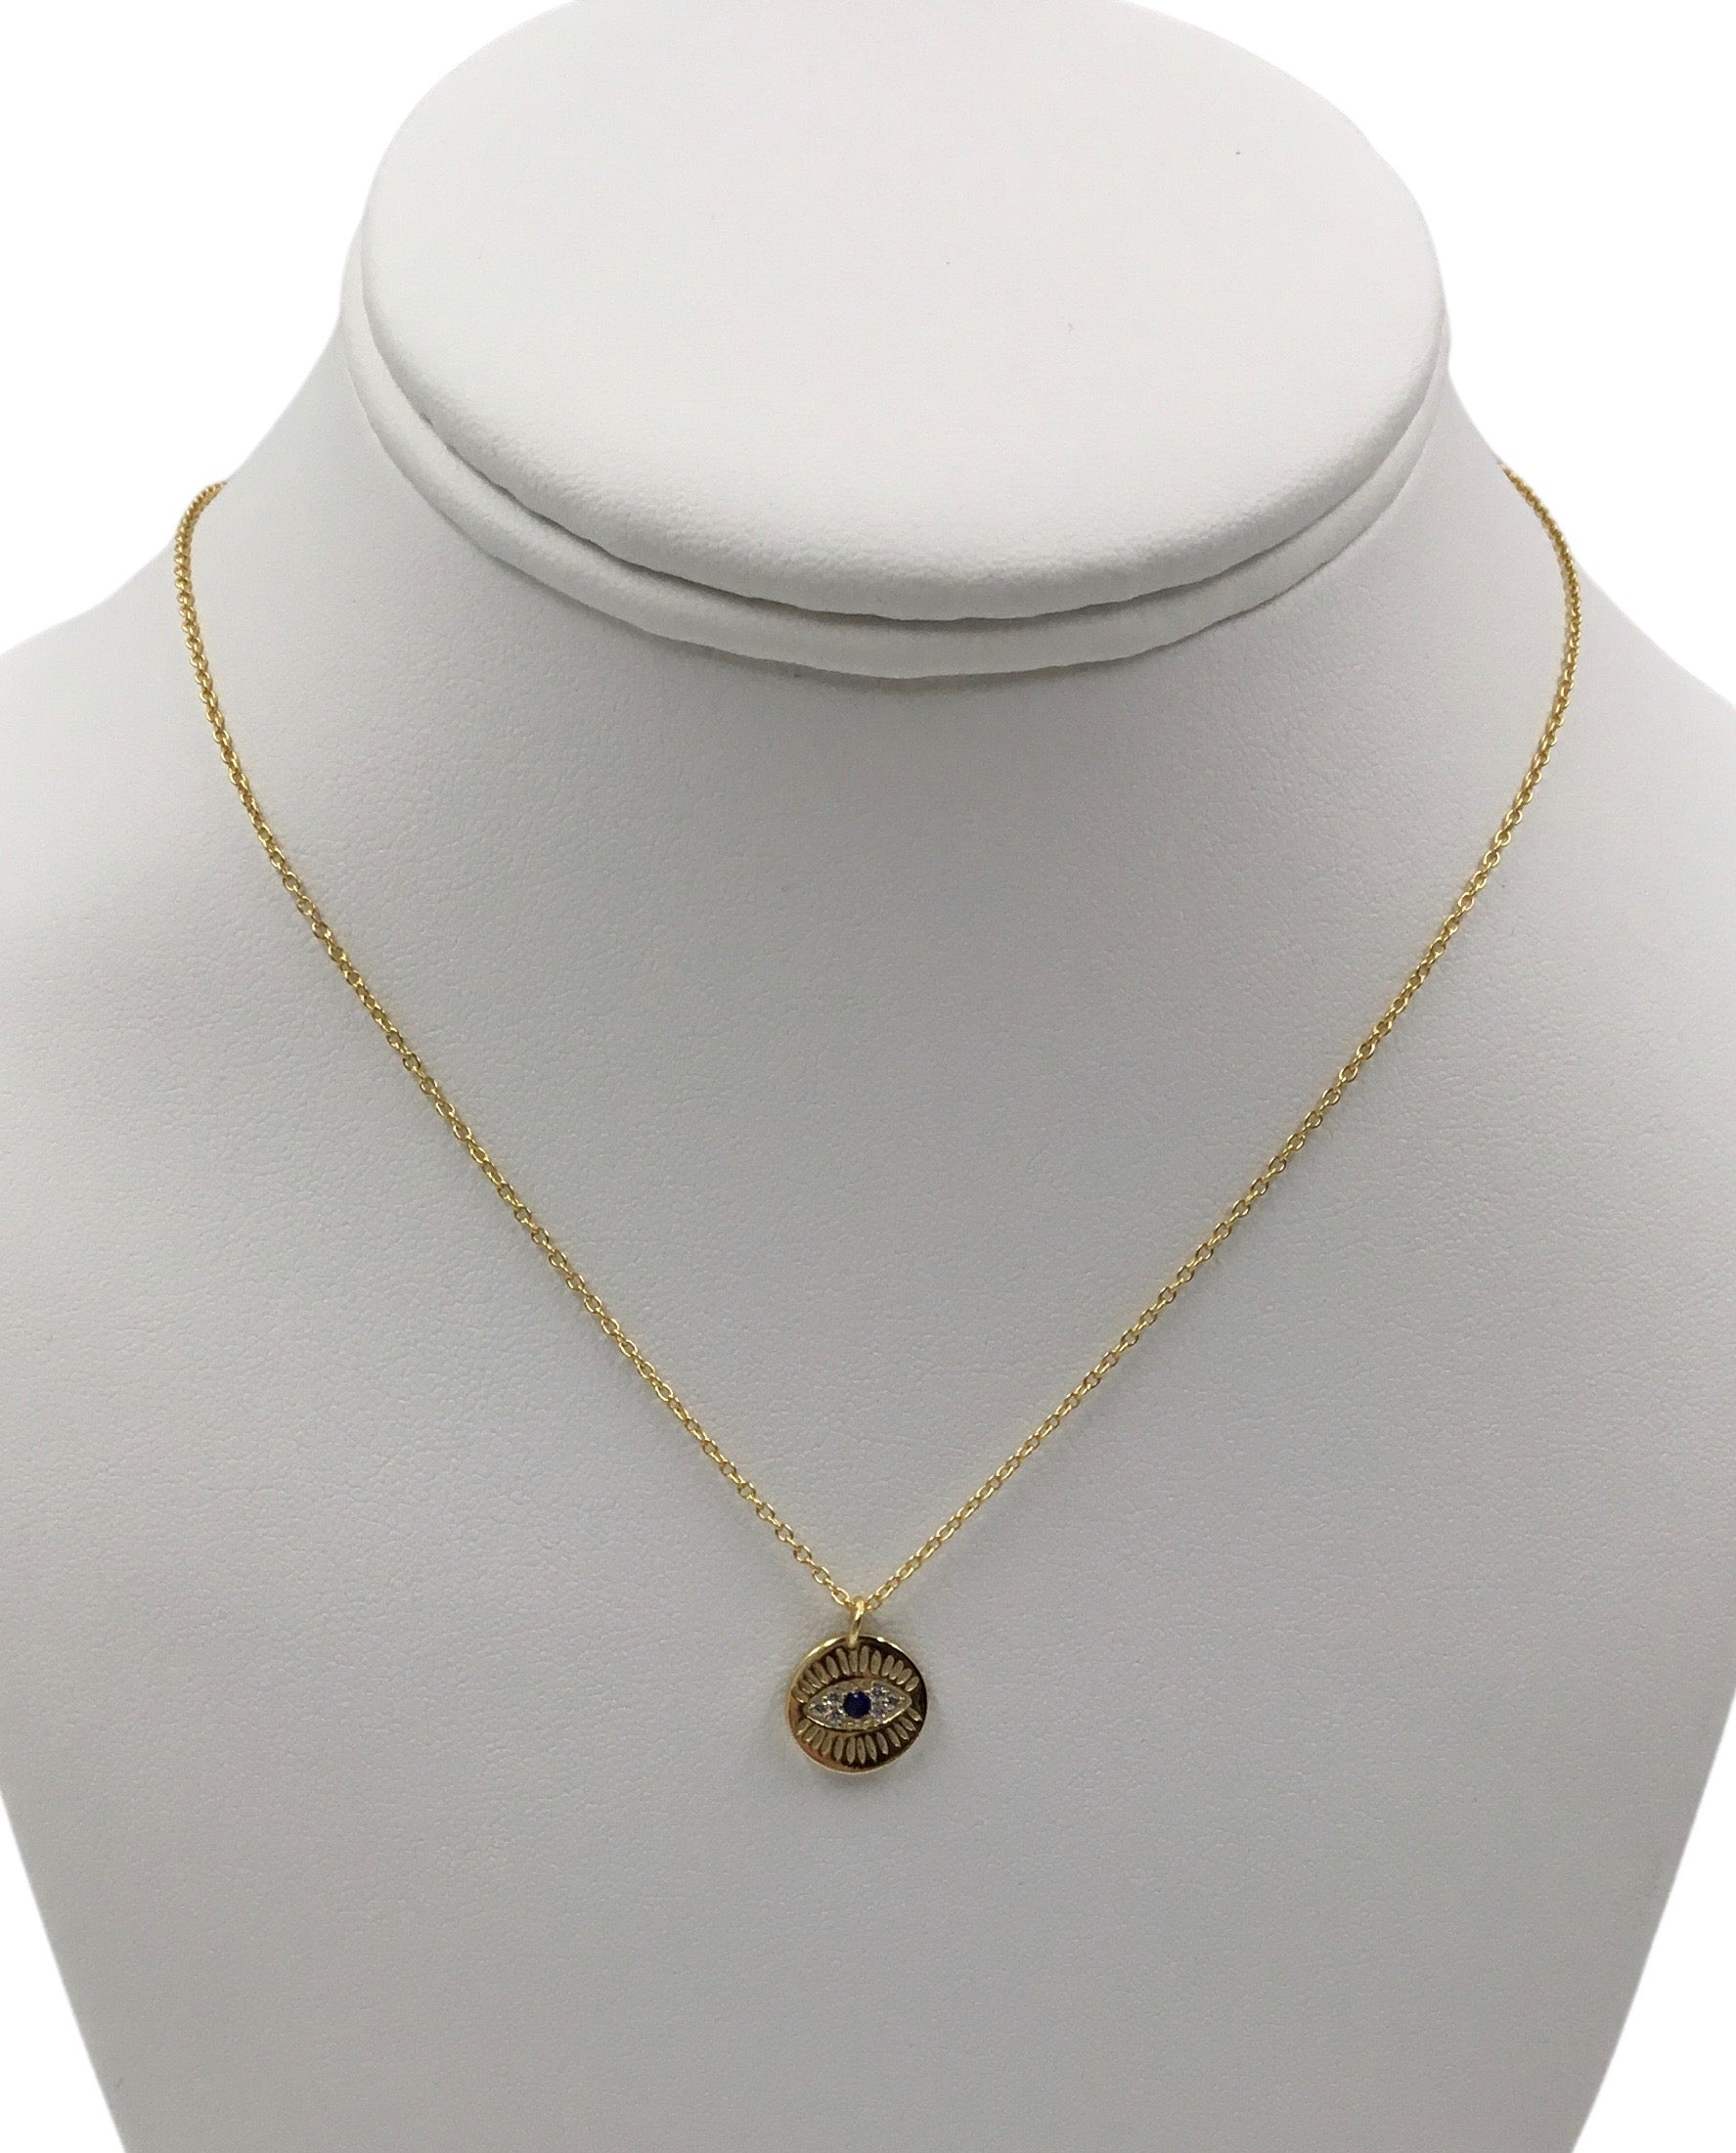 Evil Eye gold-plated Pendant  Necklace